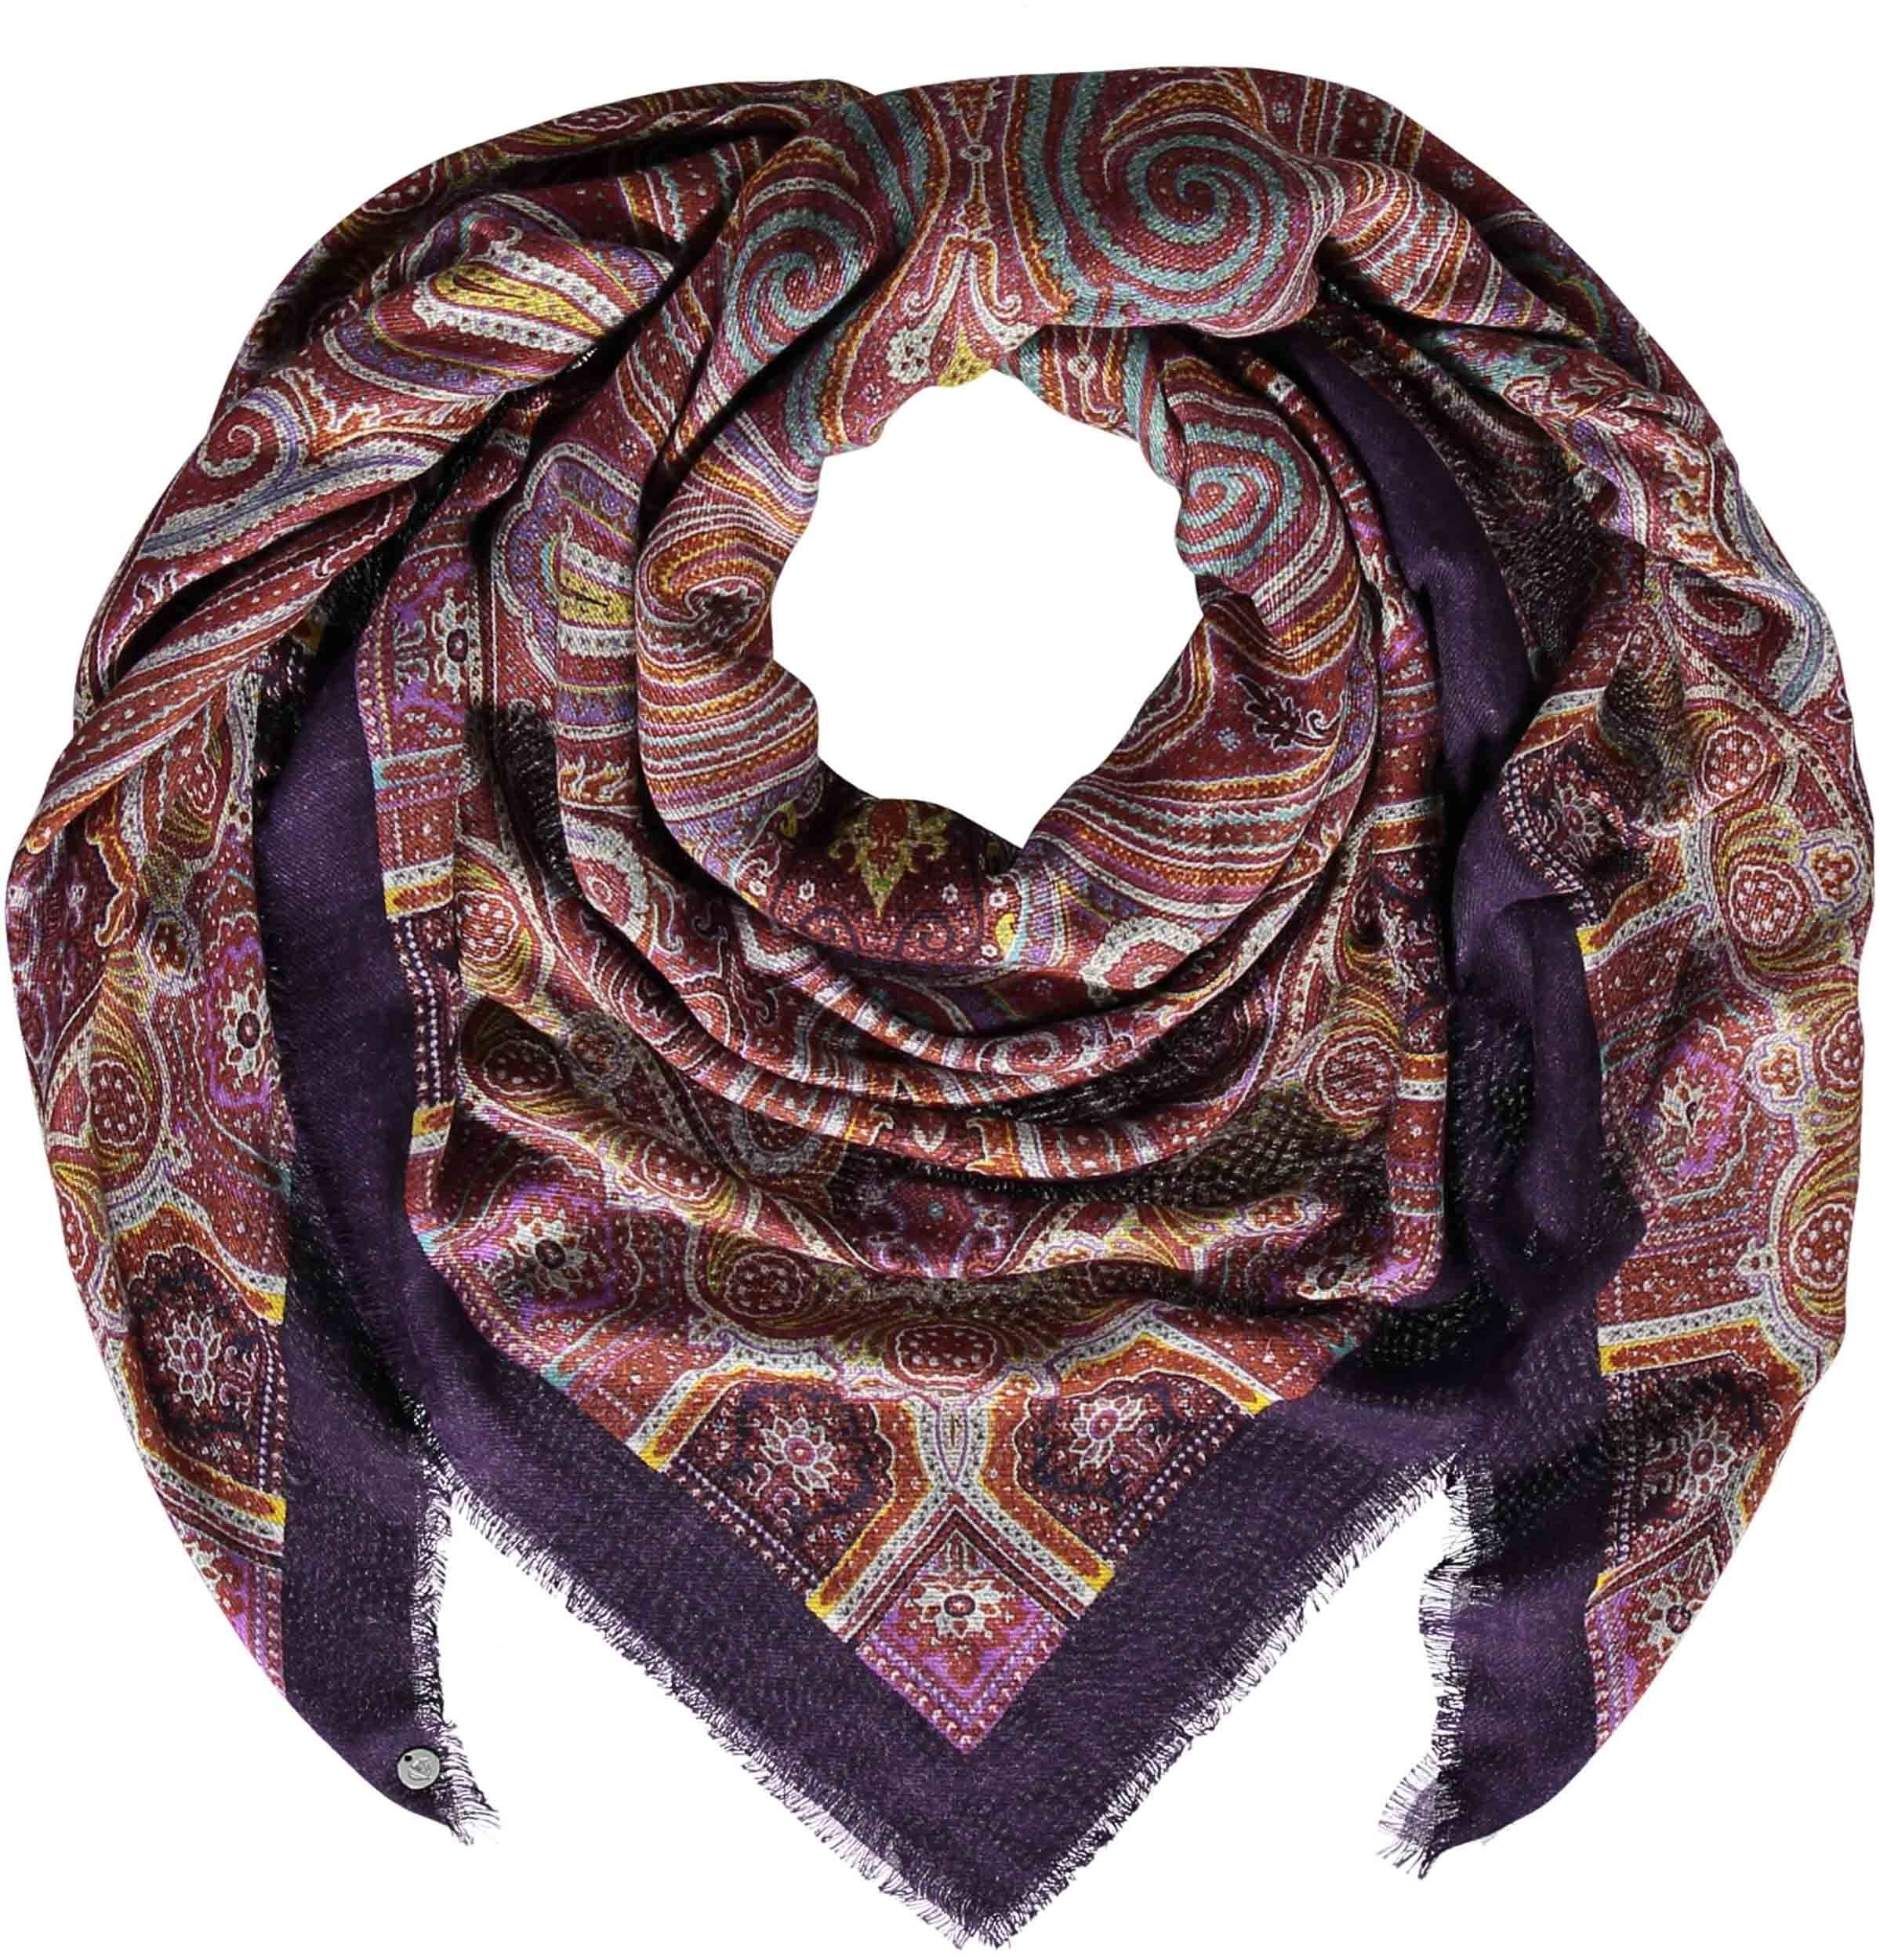 Signature Boheme Lightweight Paisley Digital Print Square Wrap